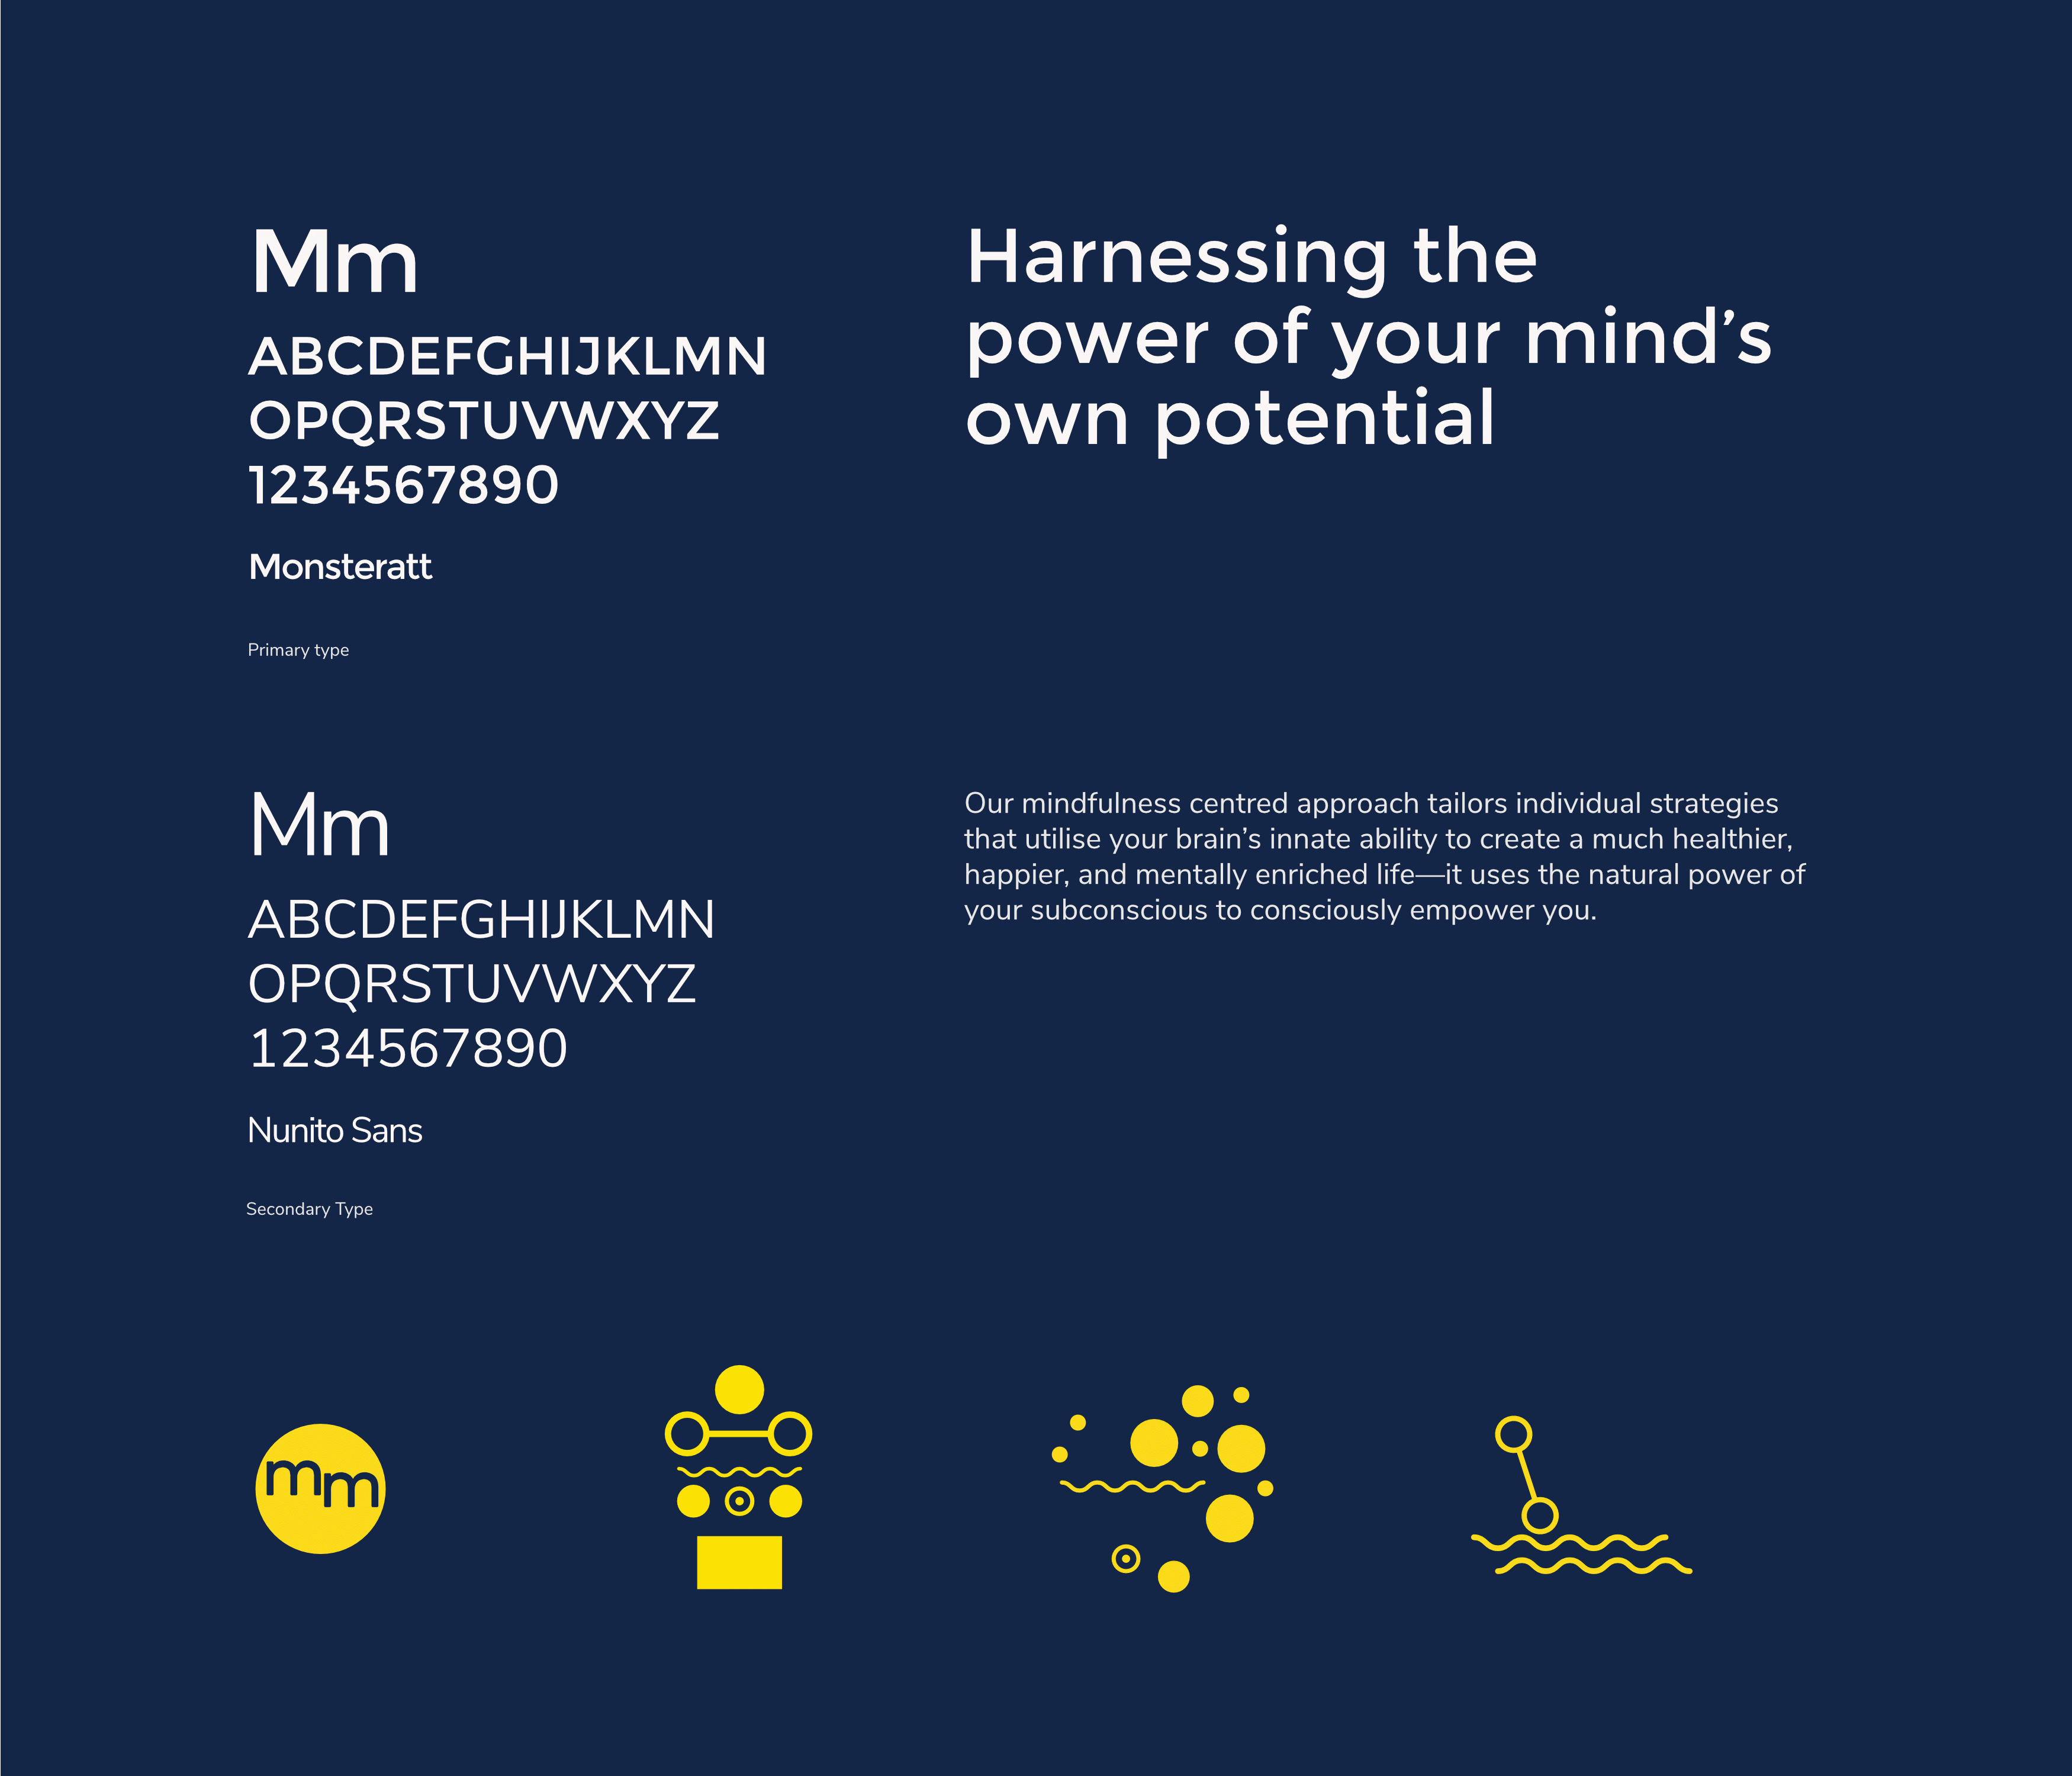 New Method: Mingling Minds - Perth based clinical hypnosis clinic fonts and graphics